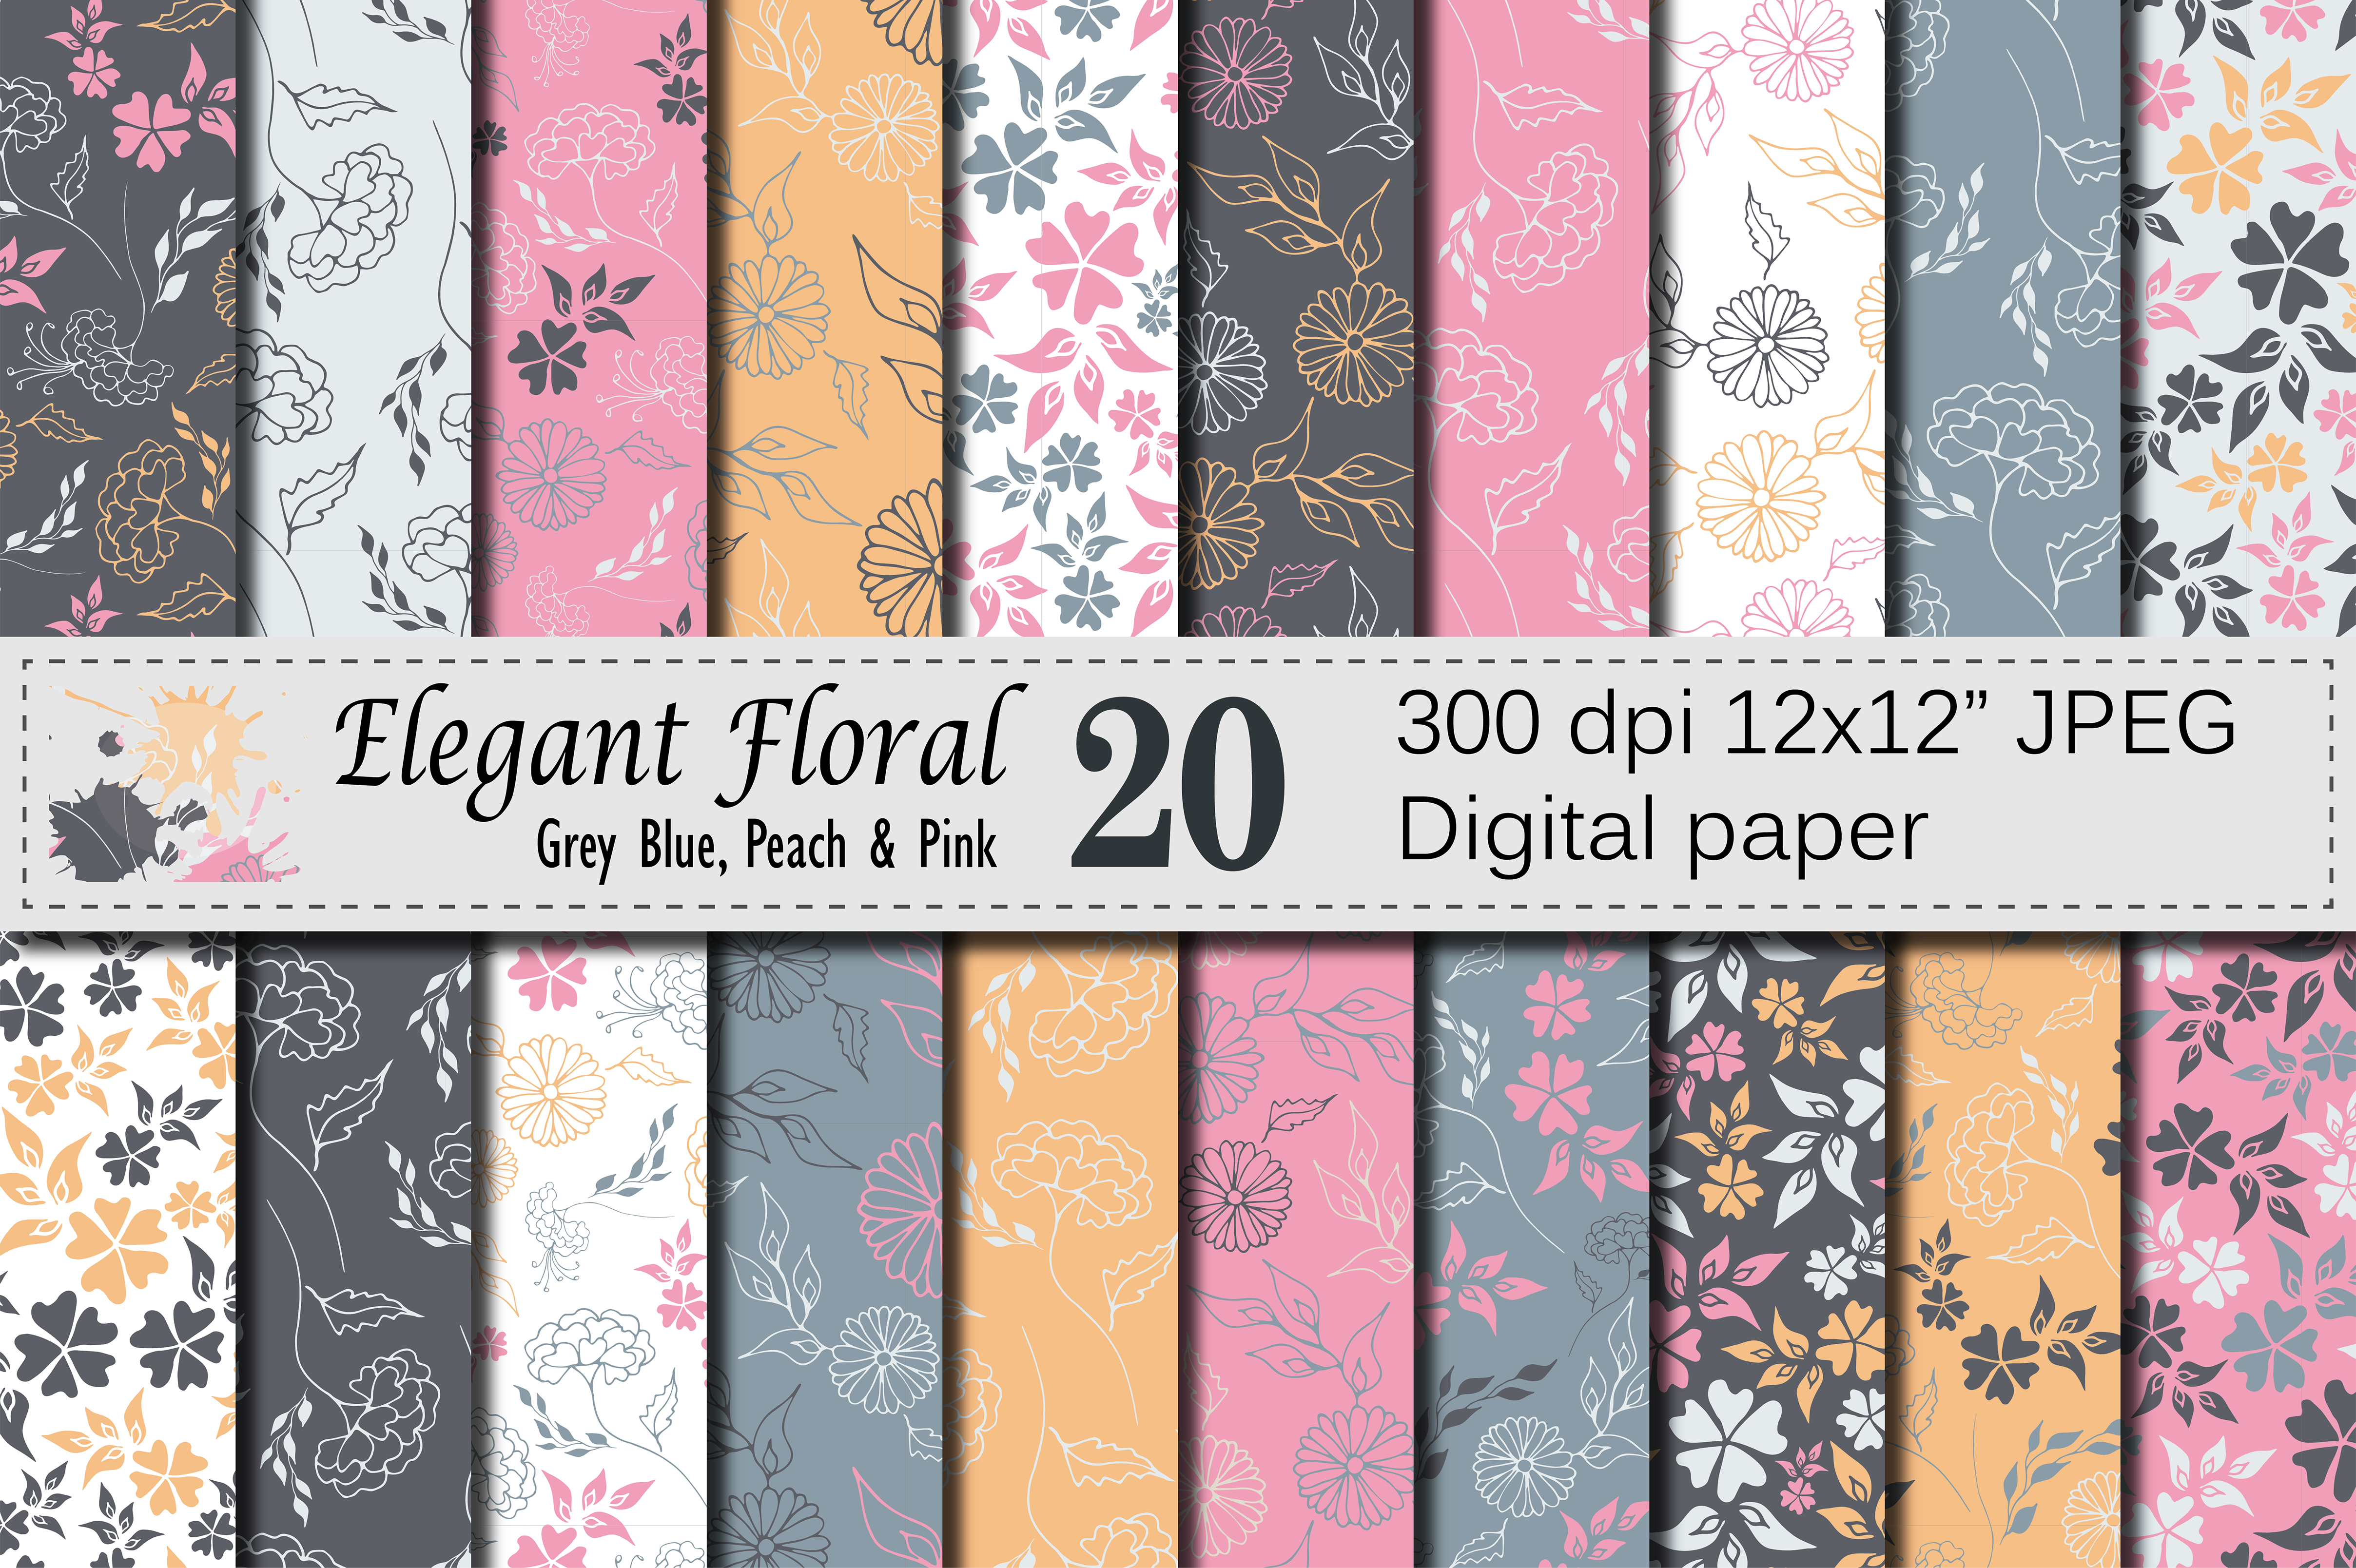 Seamless Elegant Floral Digital Paper with Hand Drawn Flowers Graphic Patterns By VR Digital Design